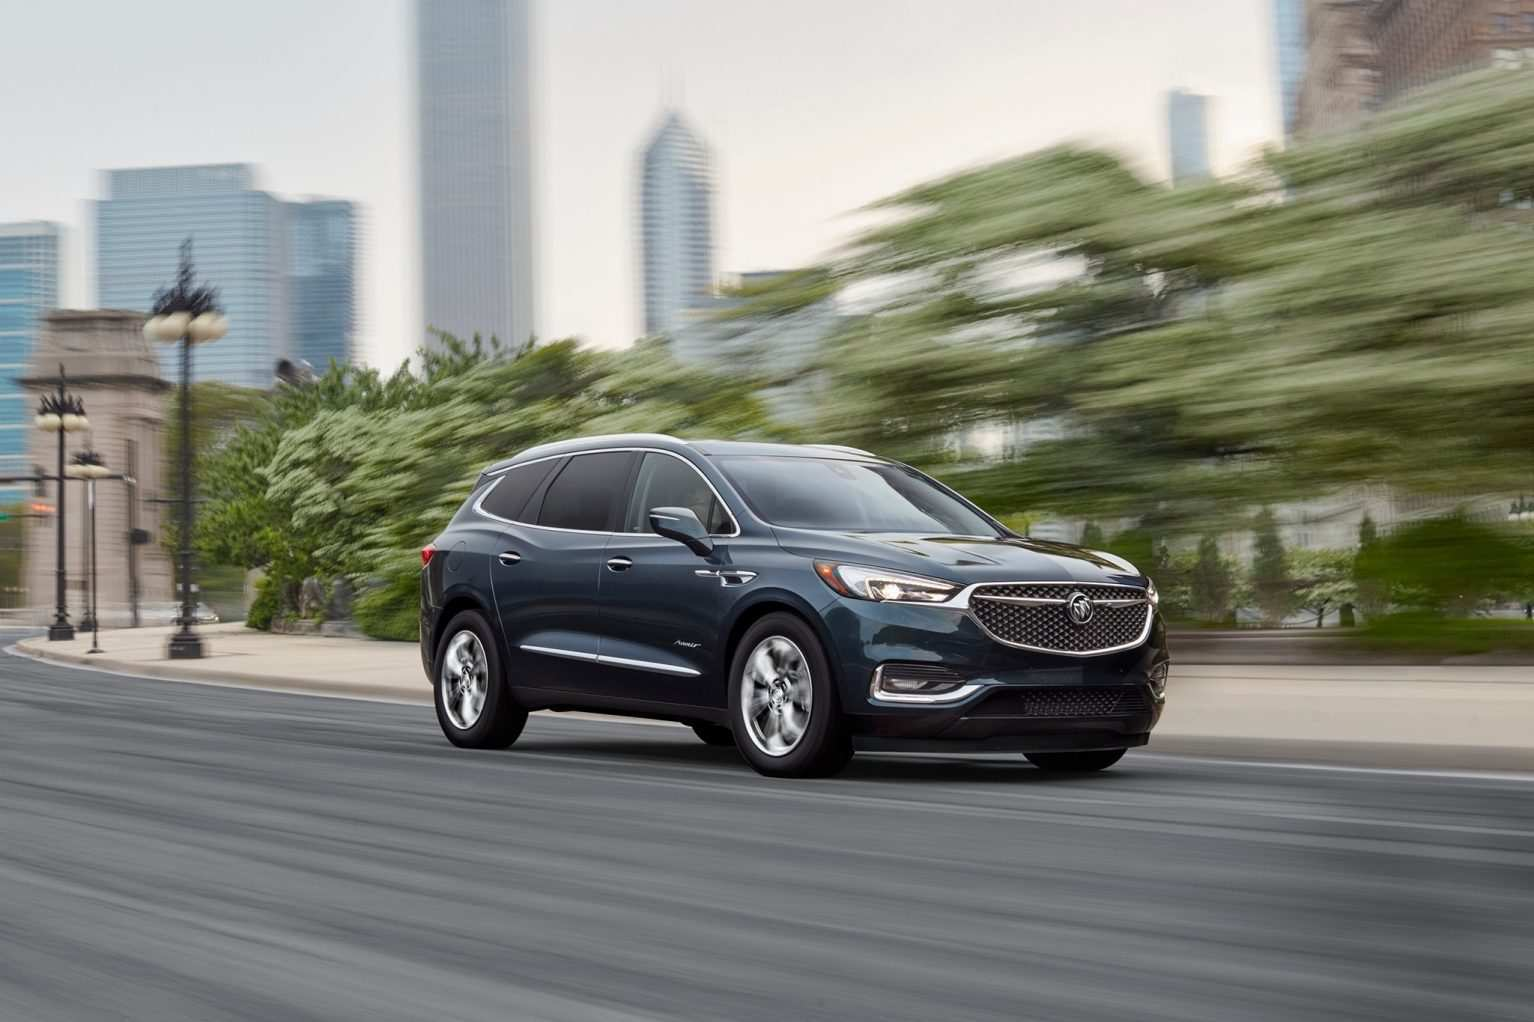 32 Concept of The How Much Is A 2019 Buick Enclave Engine Pricing by The How Much Is A 2019 Buick Enclave Engine